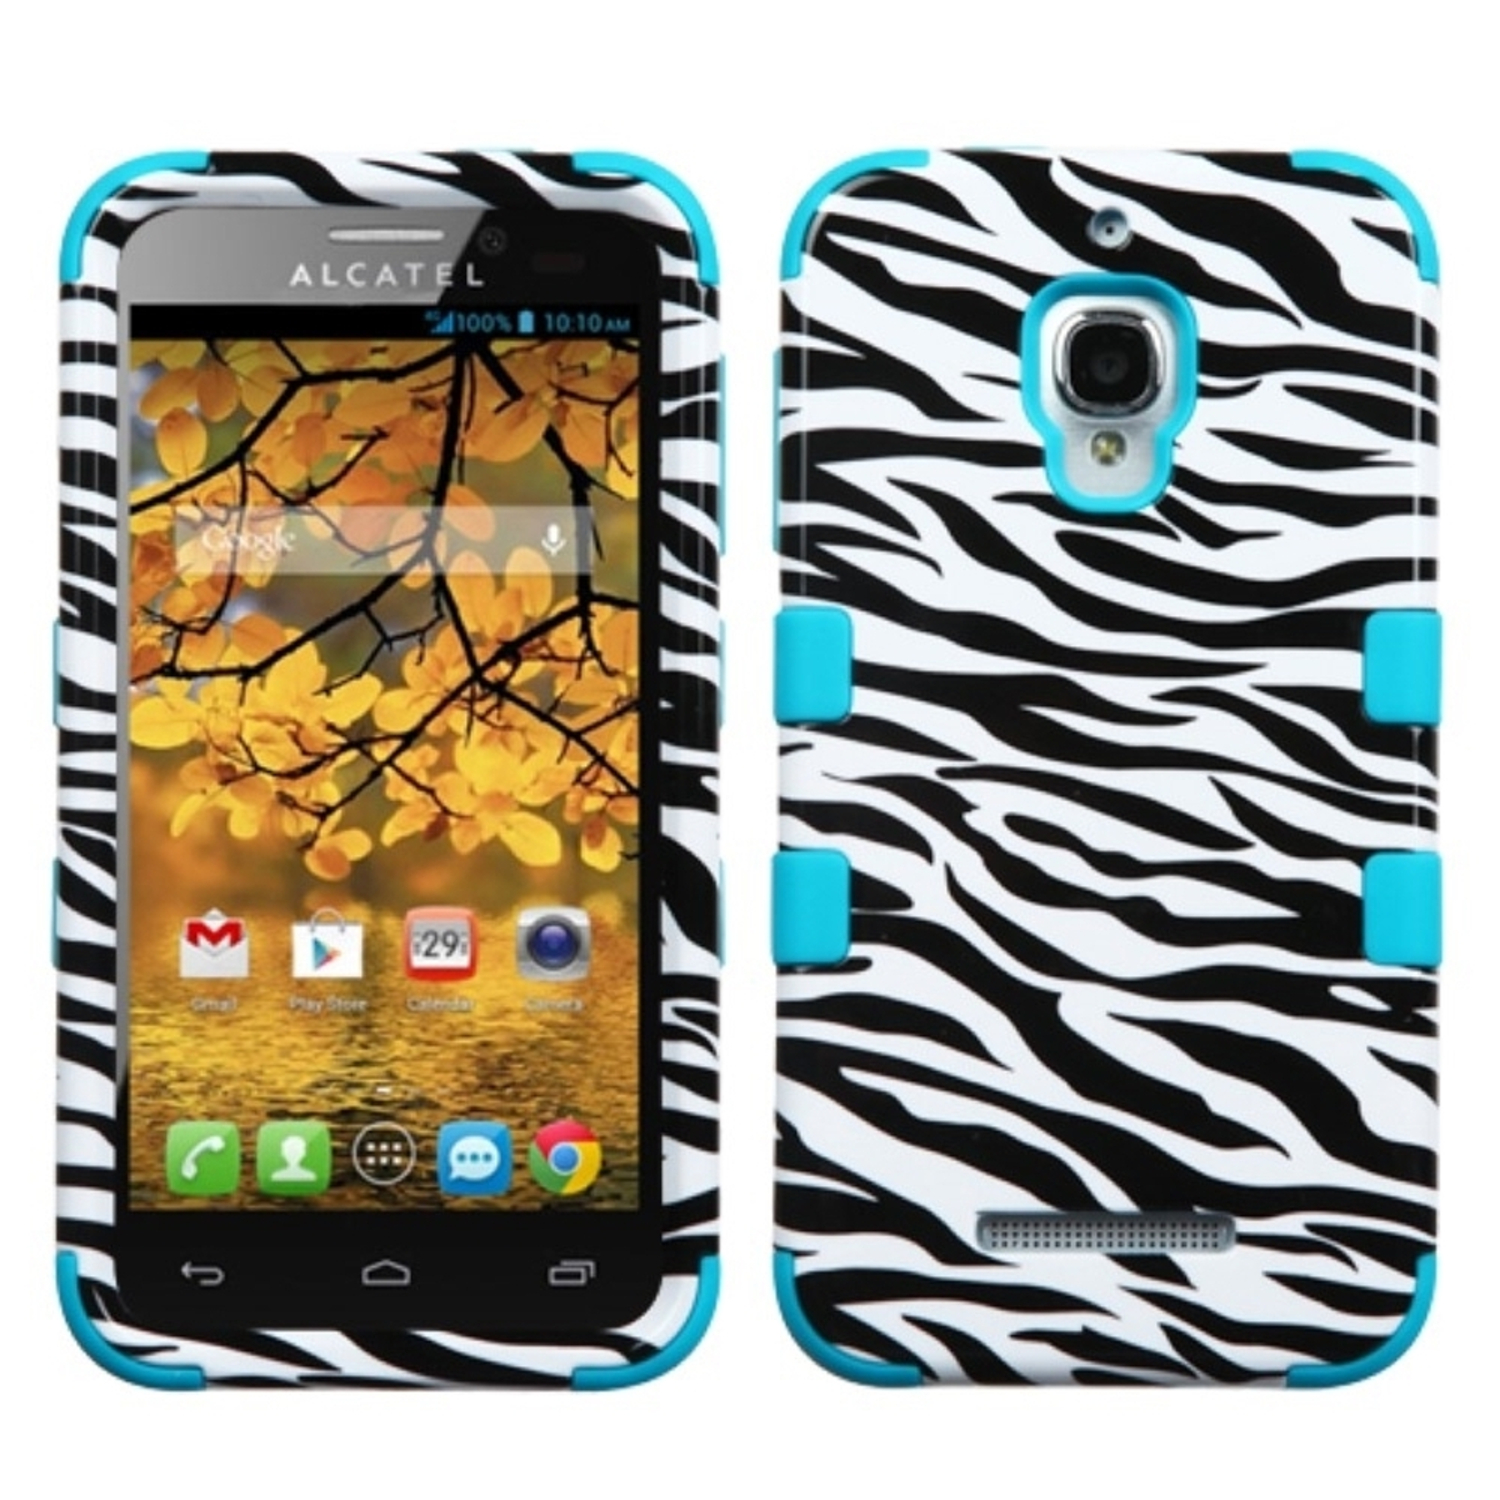 Insten Zebra Skin/Tropical Teal TUFF Hybrid Case Cover For ALCATEL One Touch Fierce 7024W